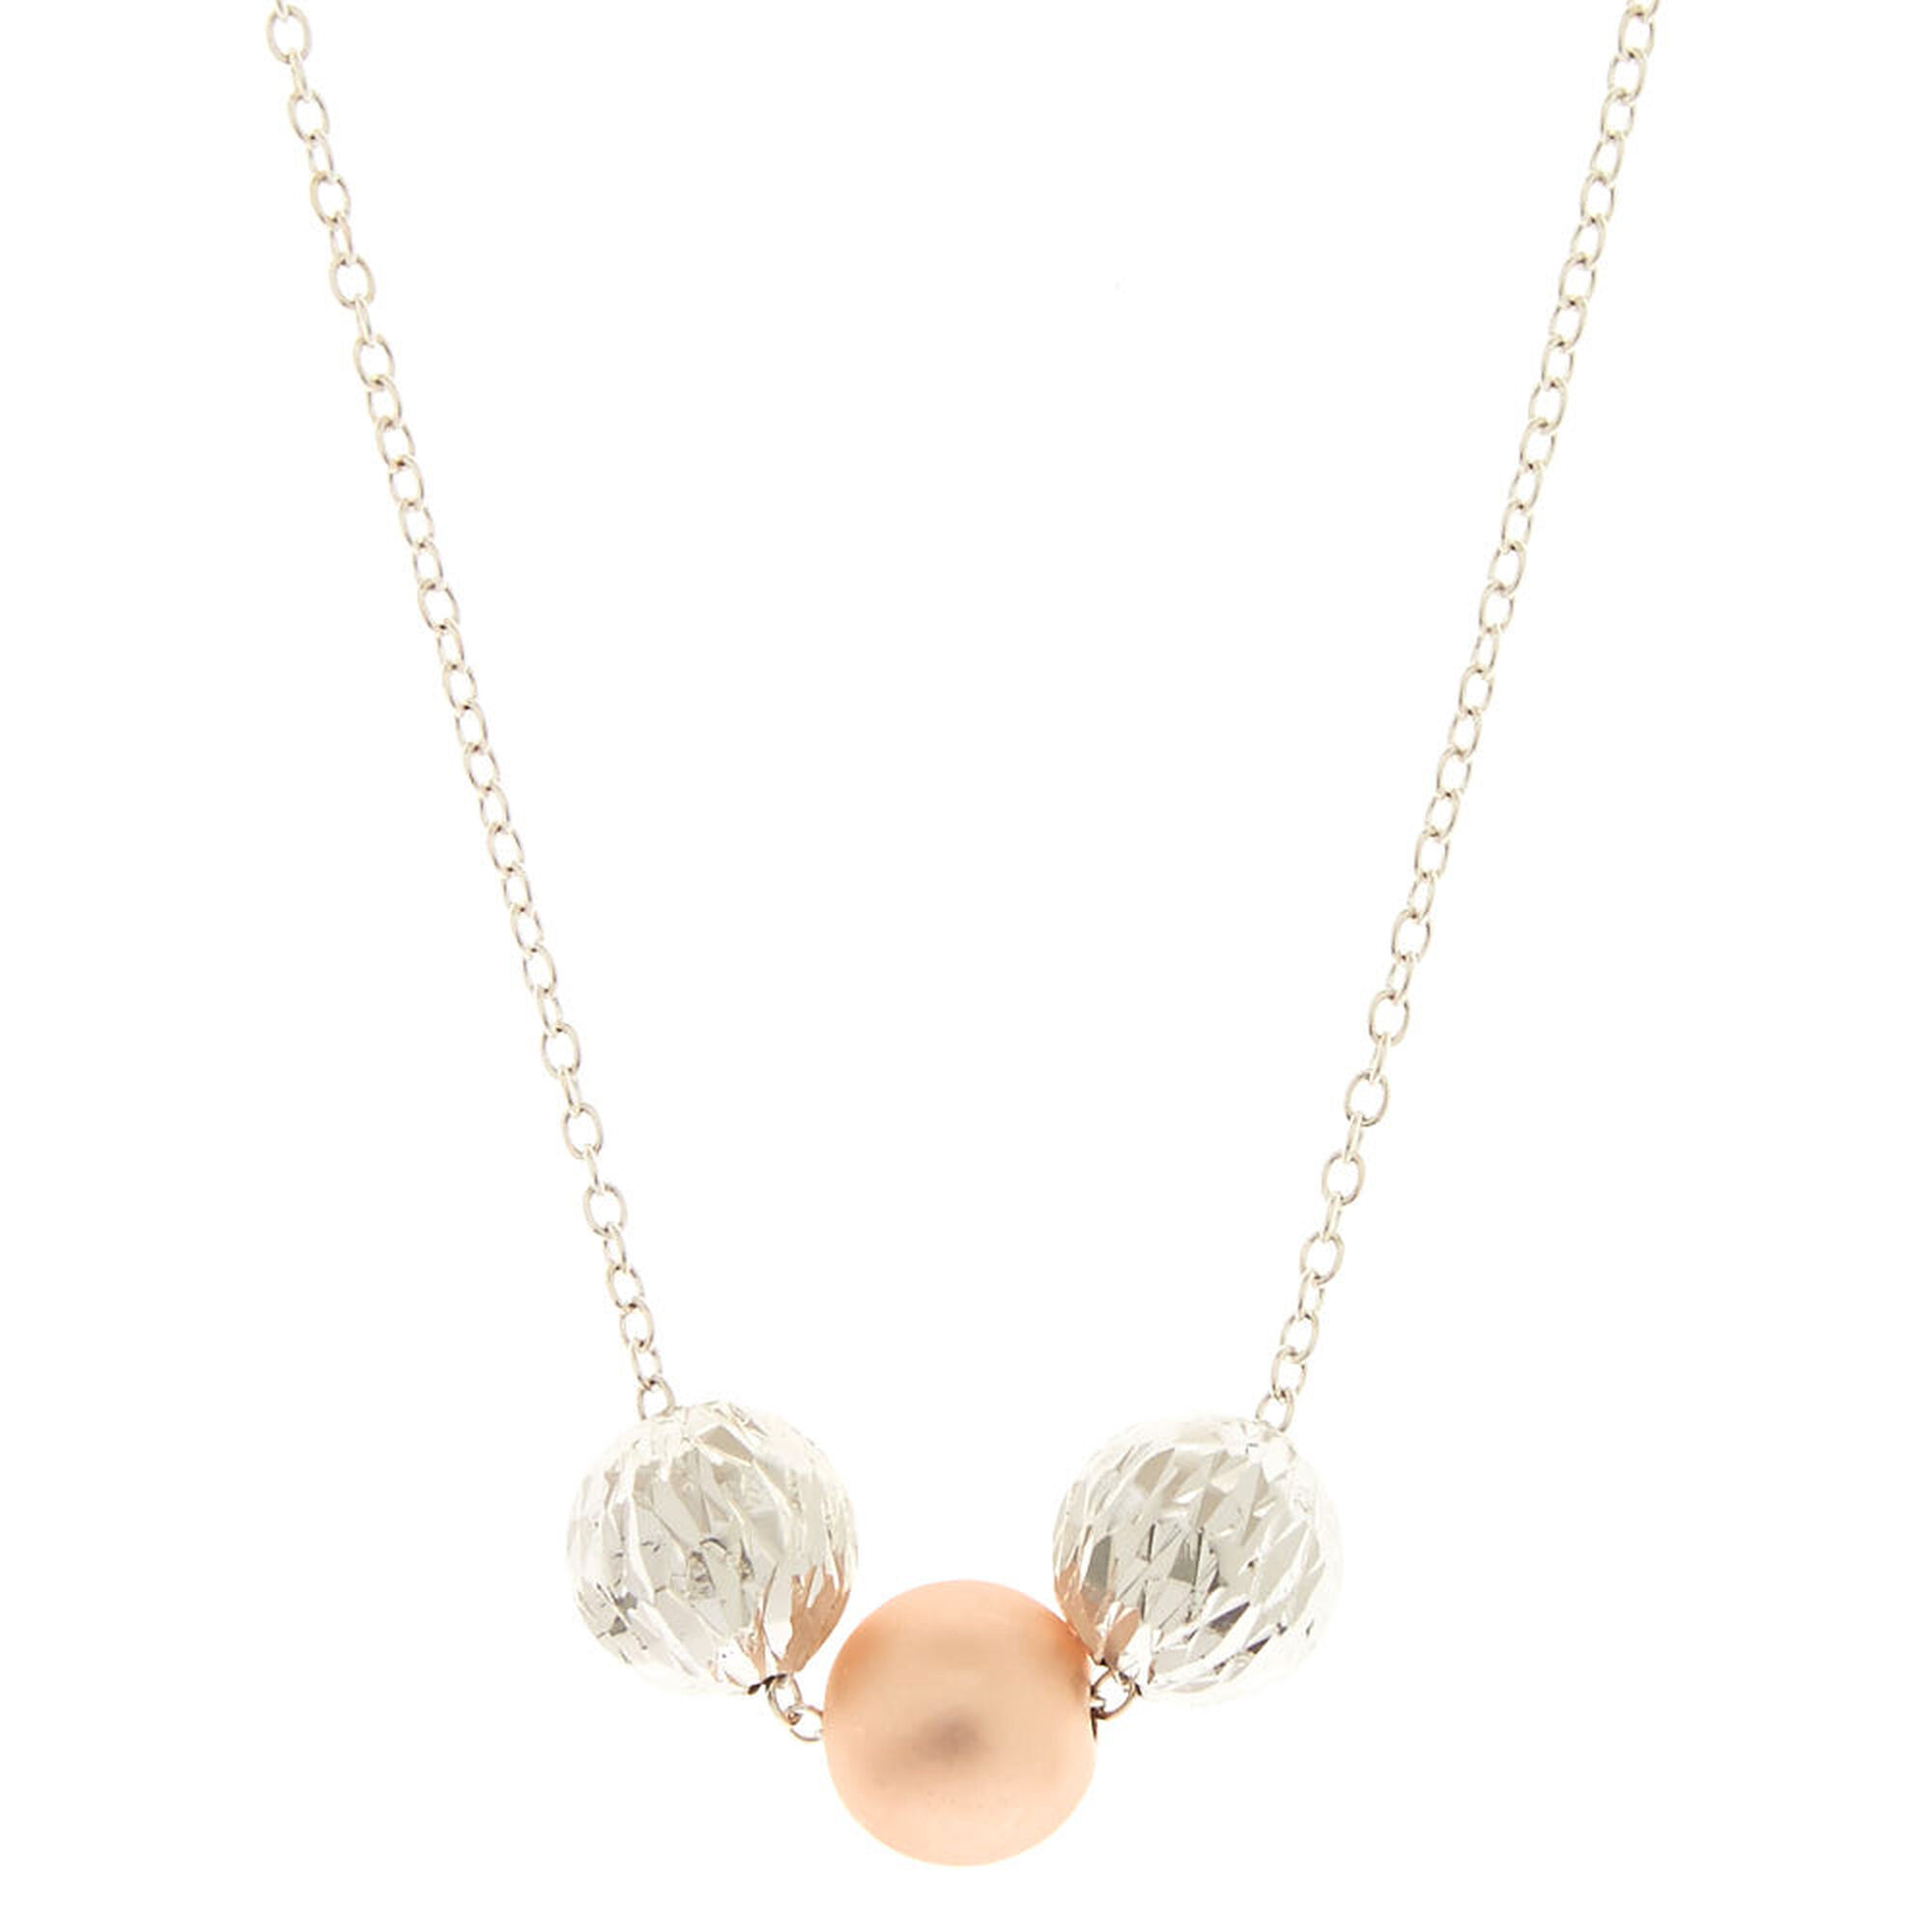 Three bead pendant necklace claires three bead pendant necklace aloadofball Image collections